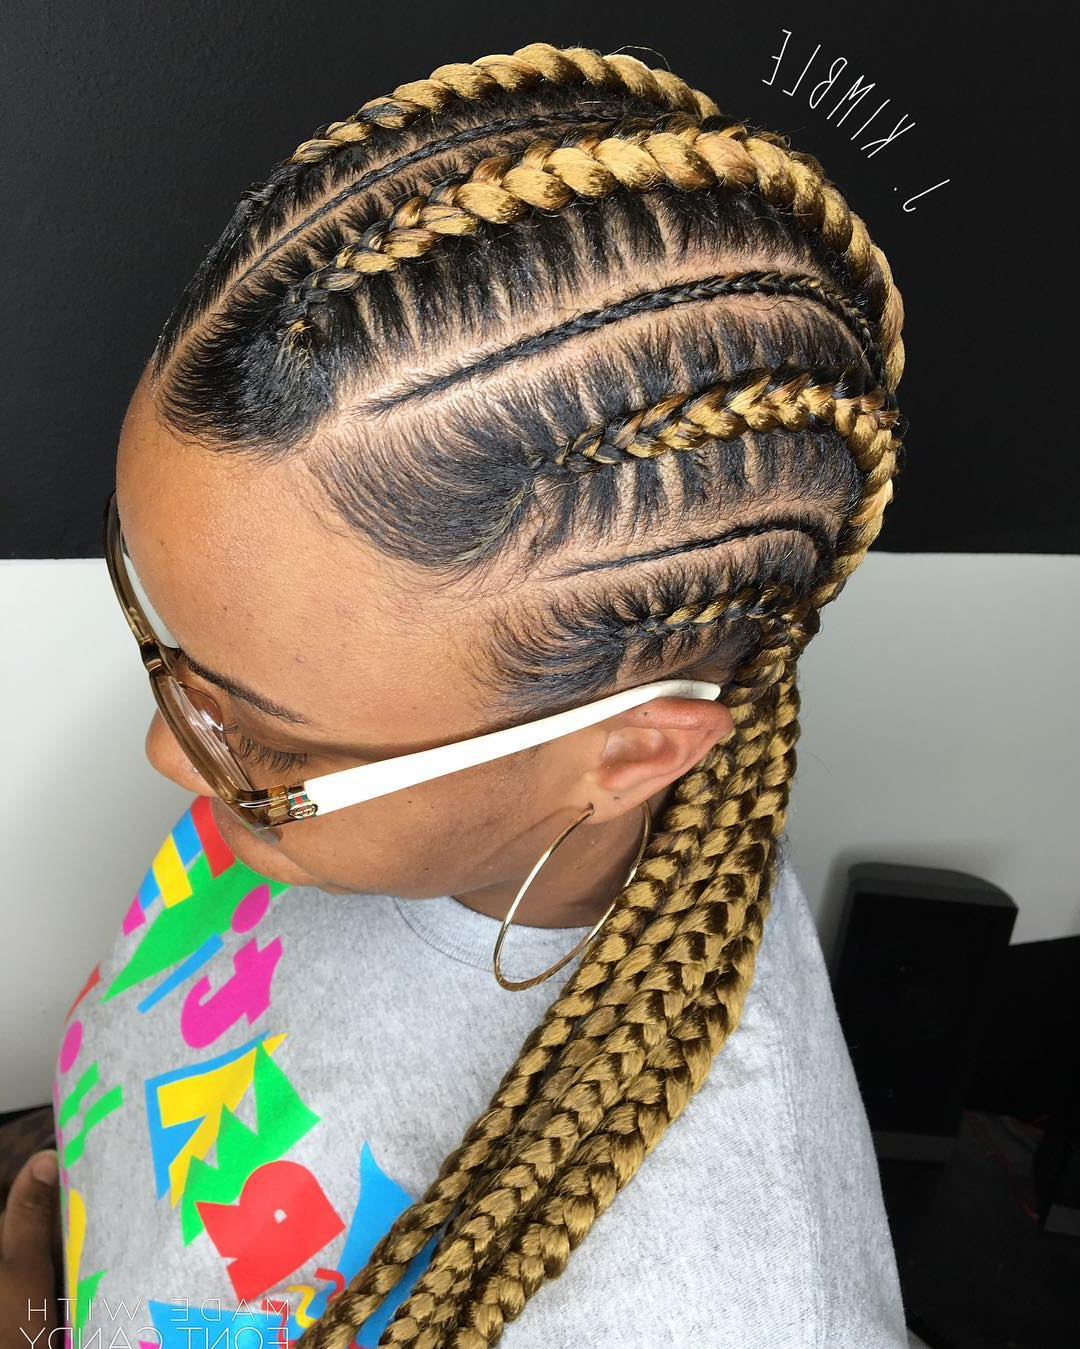 70 Best Black Braided Hairstyles That Turn Heads In 2019 For Widely Used Thick Cornrows Braided Hairstyles (View 7 of 20)